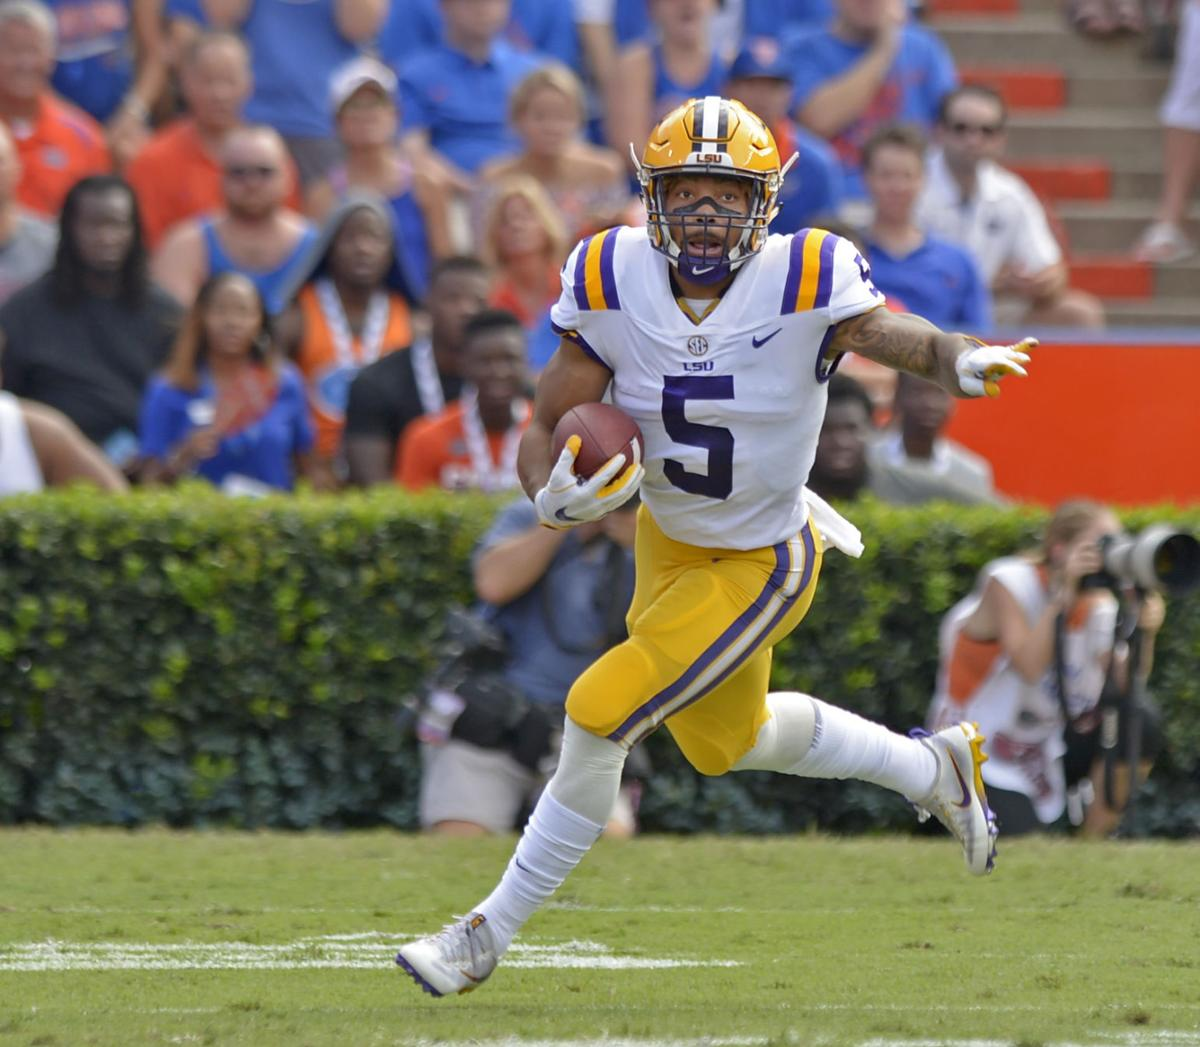 Lsu Rb Derrius Guice Still Limited With Nagging Injury